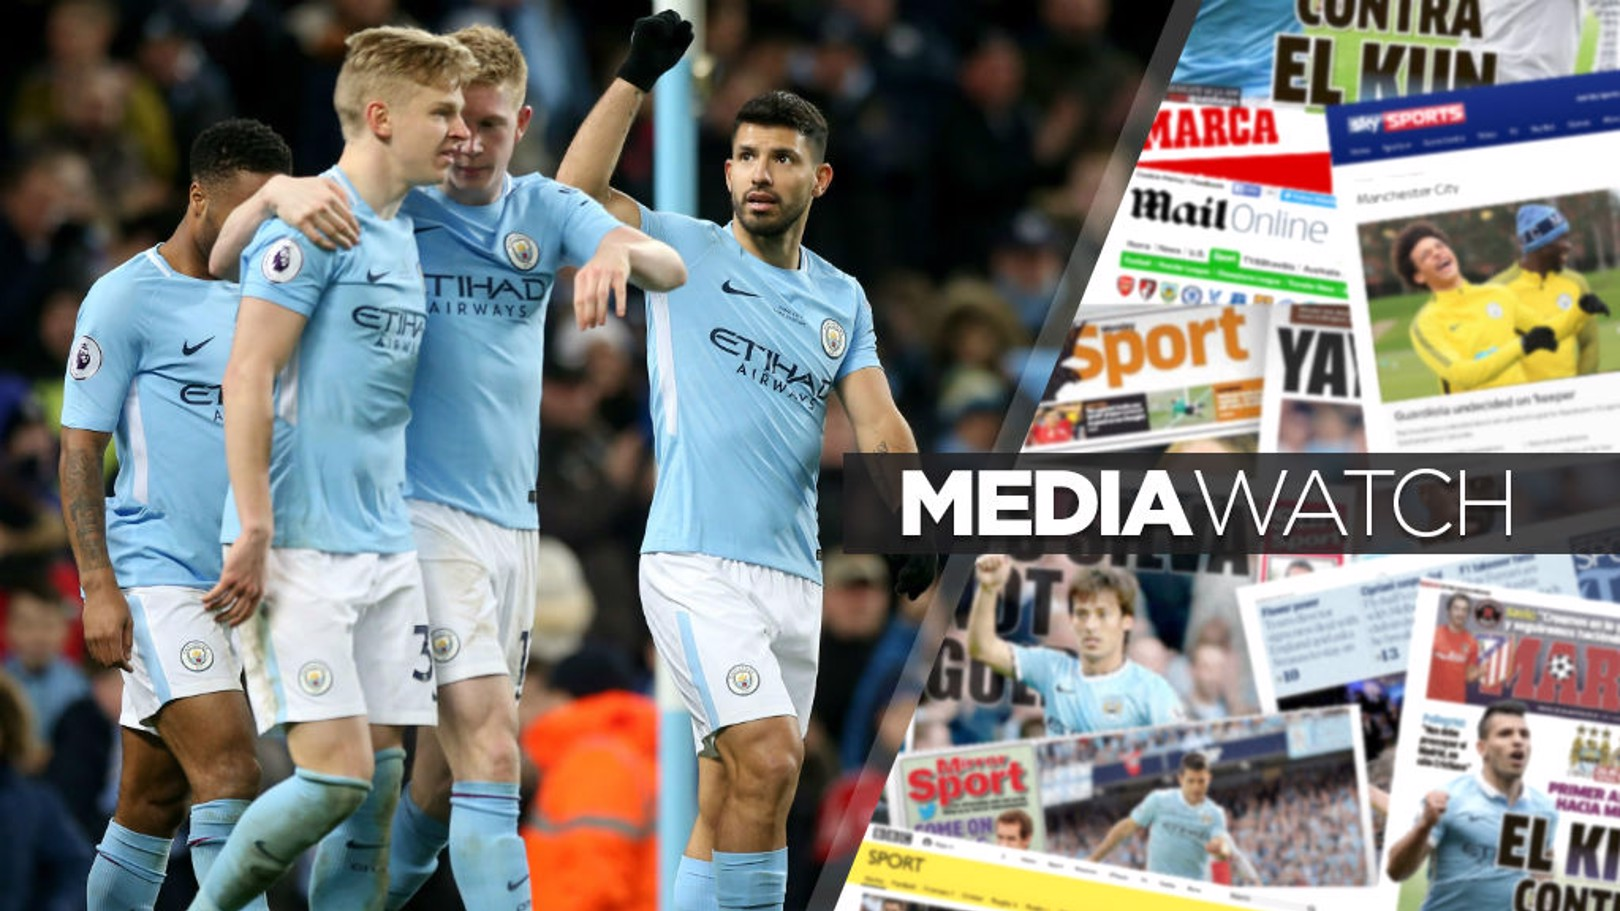 MEDIA WATCH: It's your Sunday media round-up!